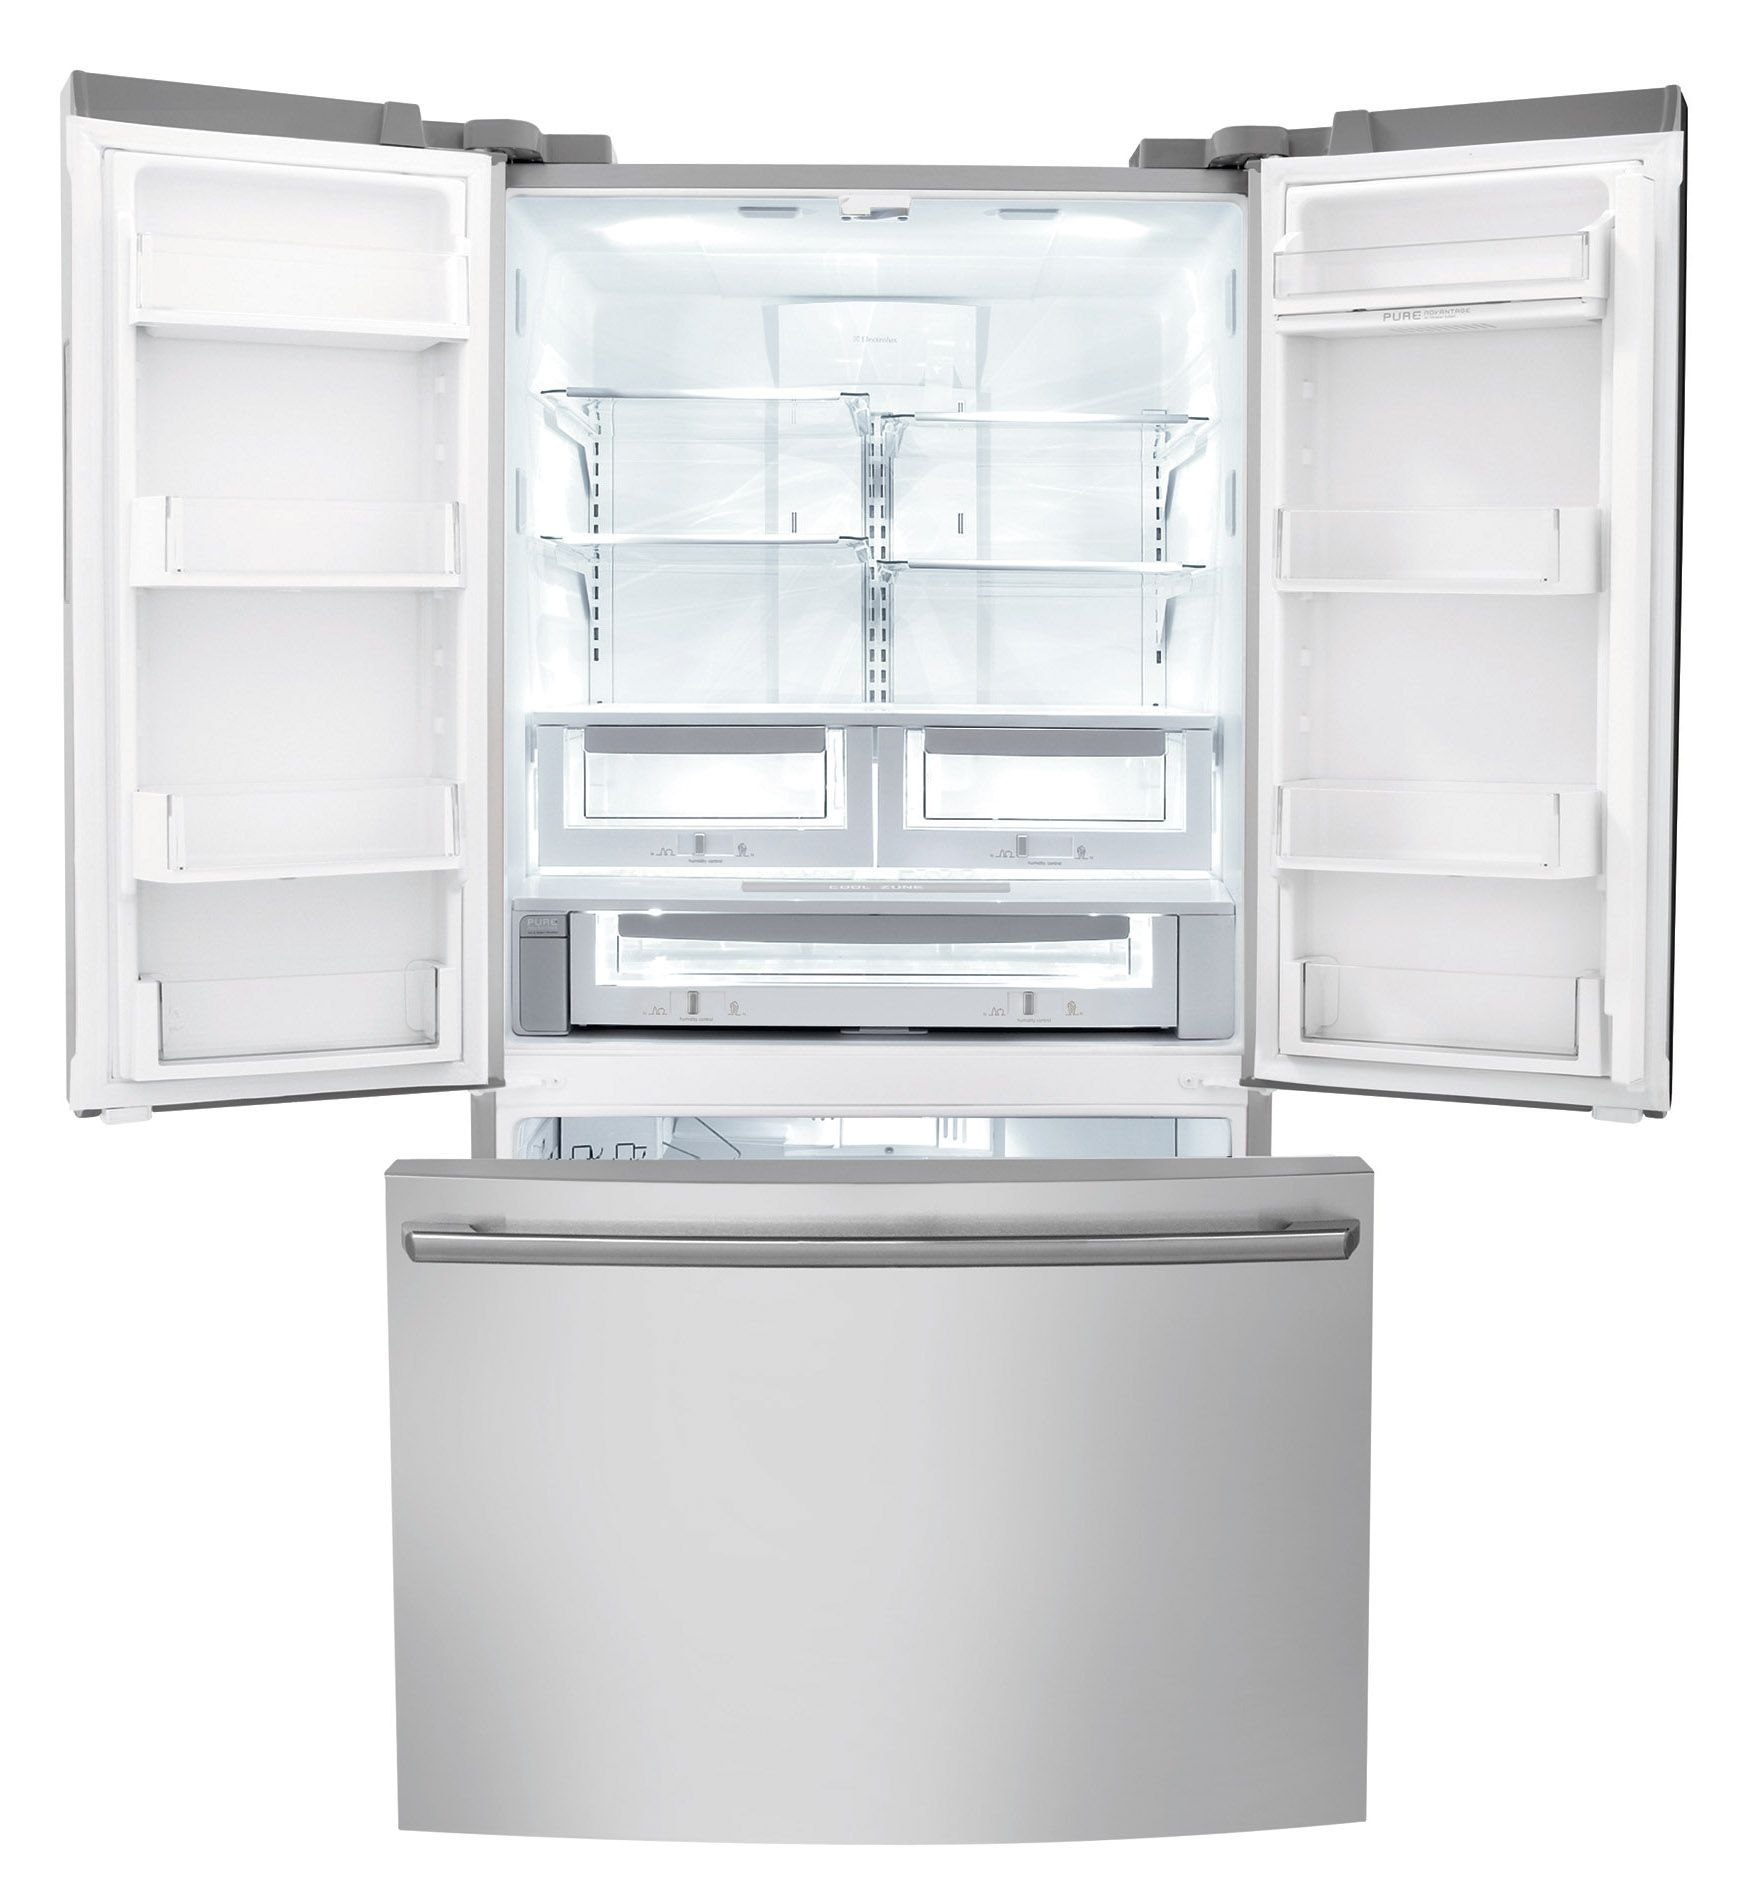 Electrolux EI23BC60KS 22.6 cu. ft. Counter-depth French Door Refrigerator with IQ-Touch™ Controls - Stainless Steel